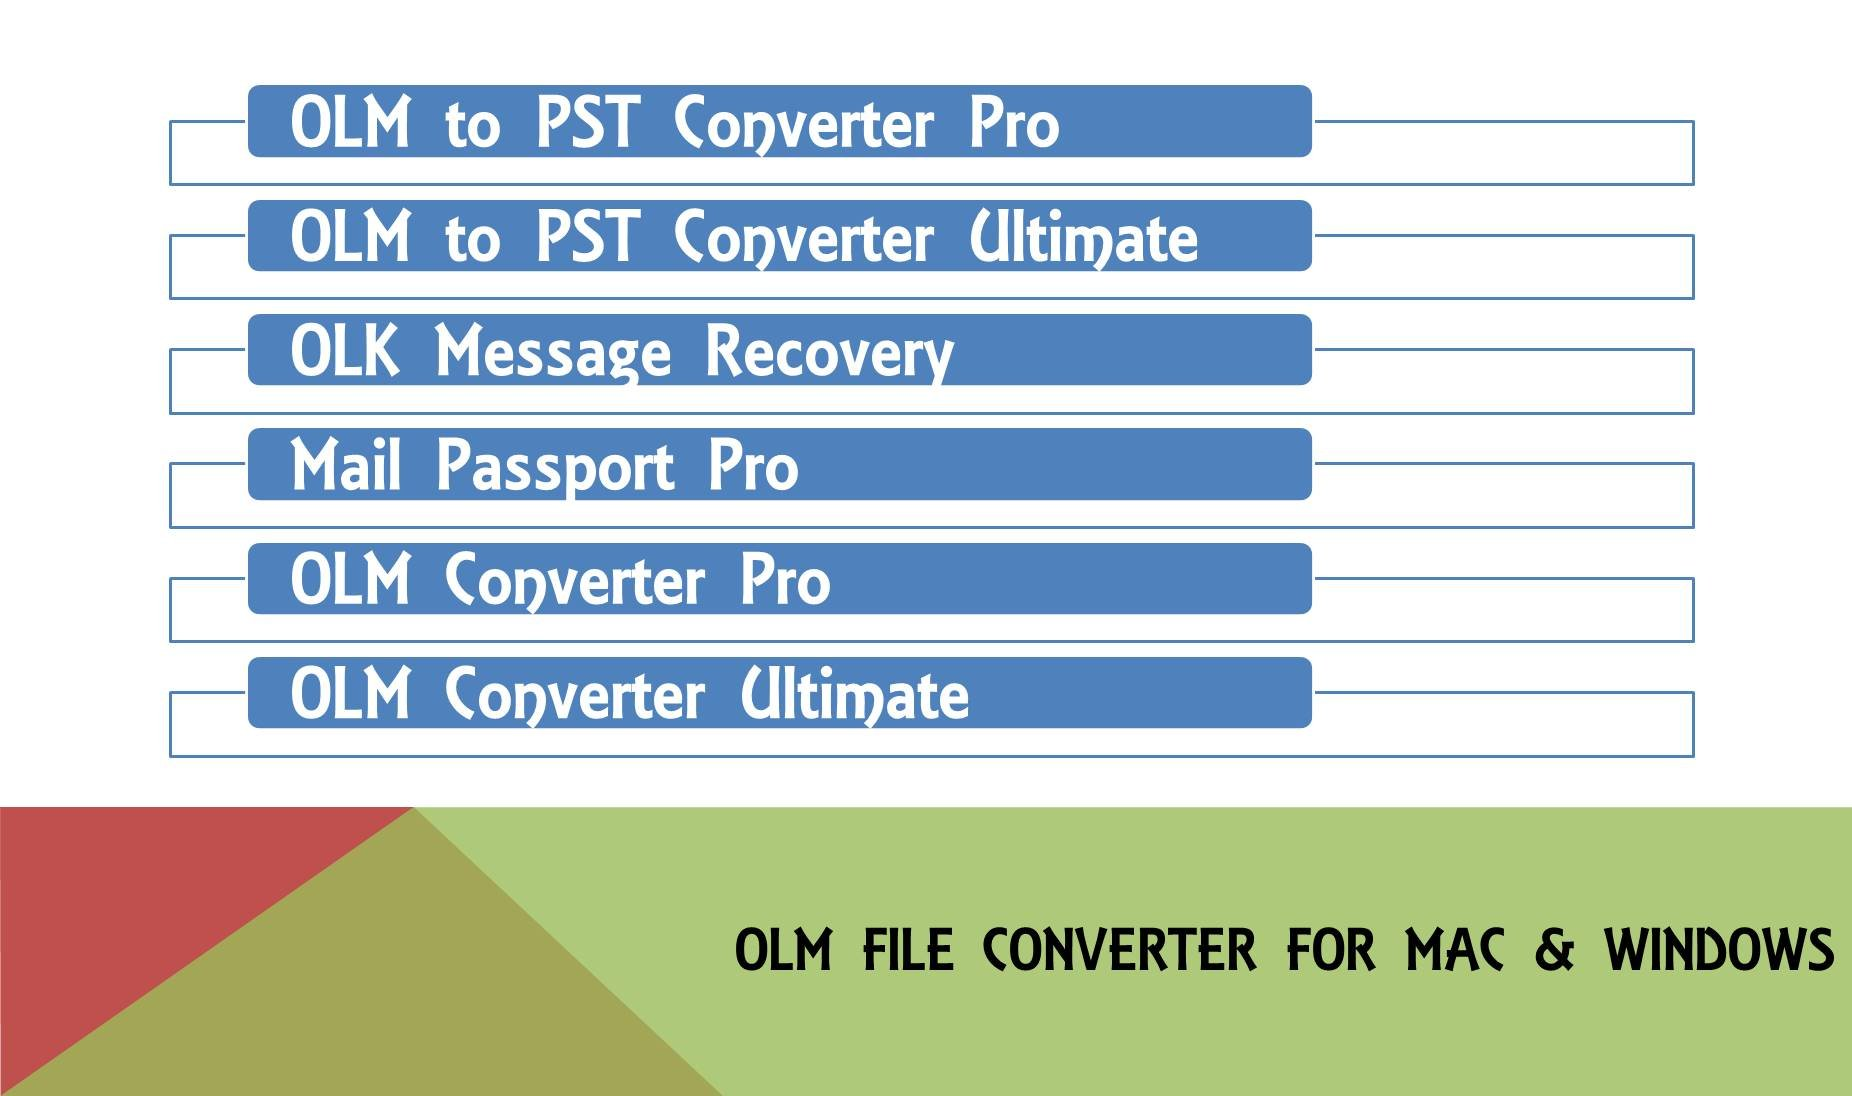 olm file converter tools